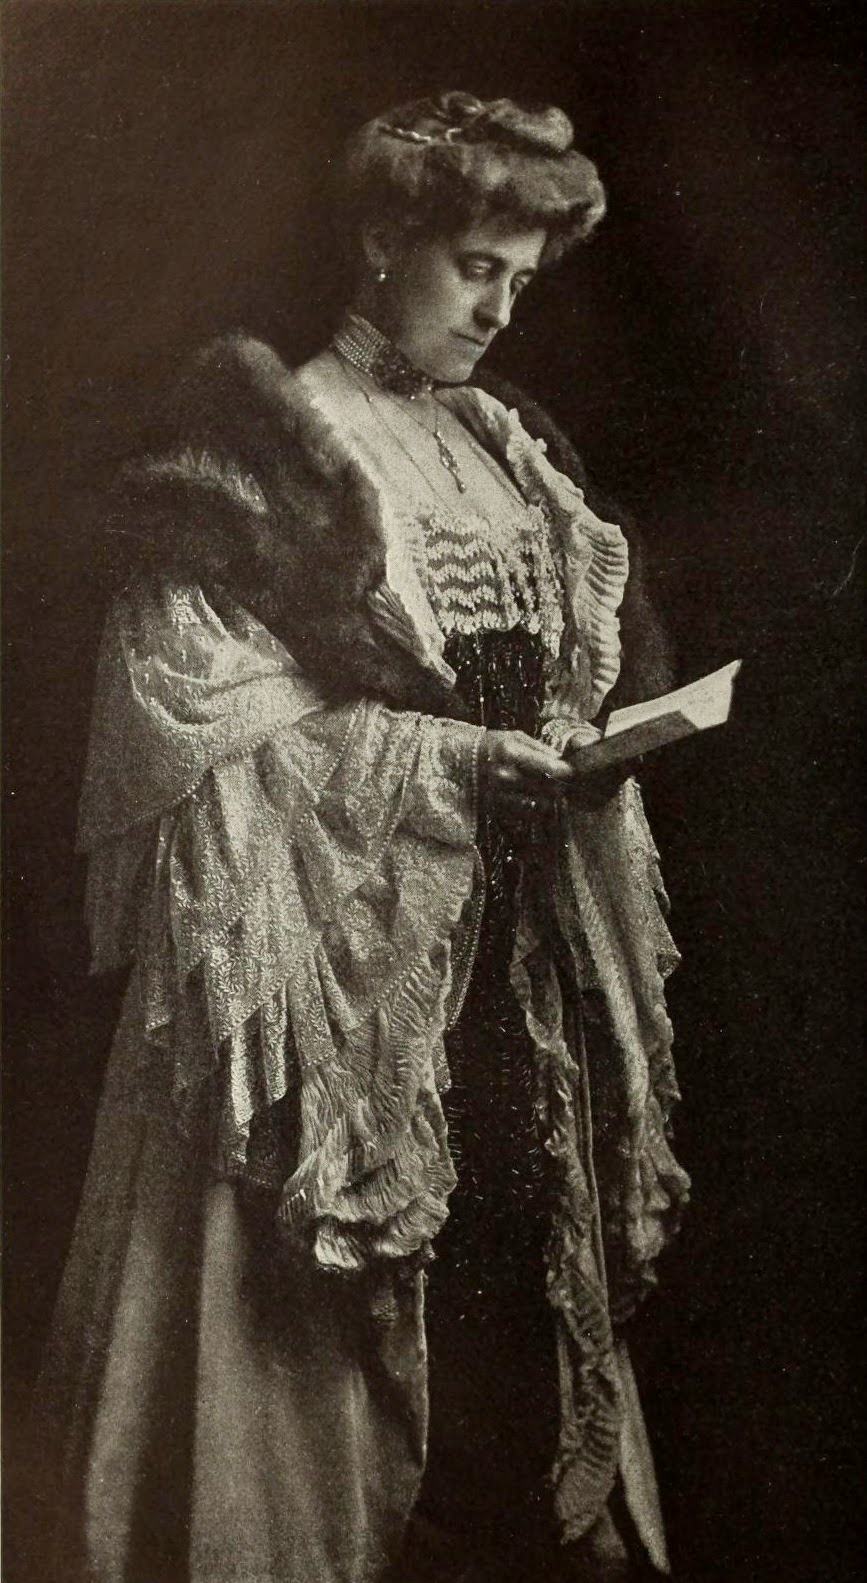 Image of Edith Wharton - Source: http://upload.wikimedia.org/wikipedia/commons/f/fb/Picture_of_Edith_Wharton.jpg